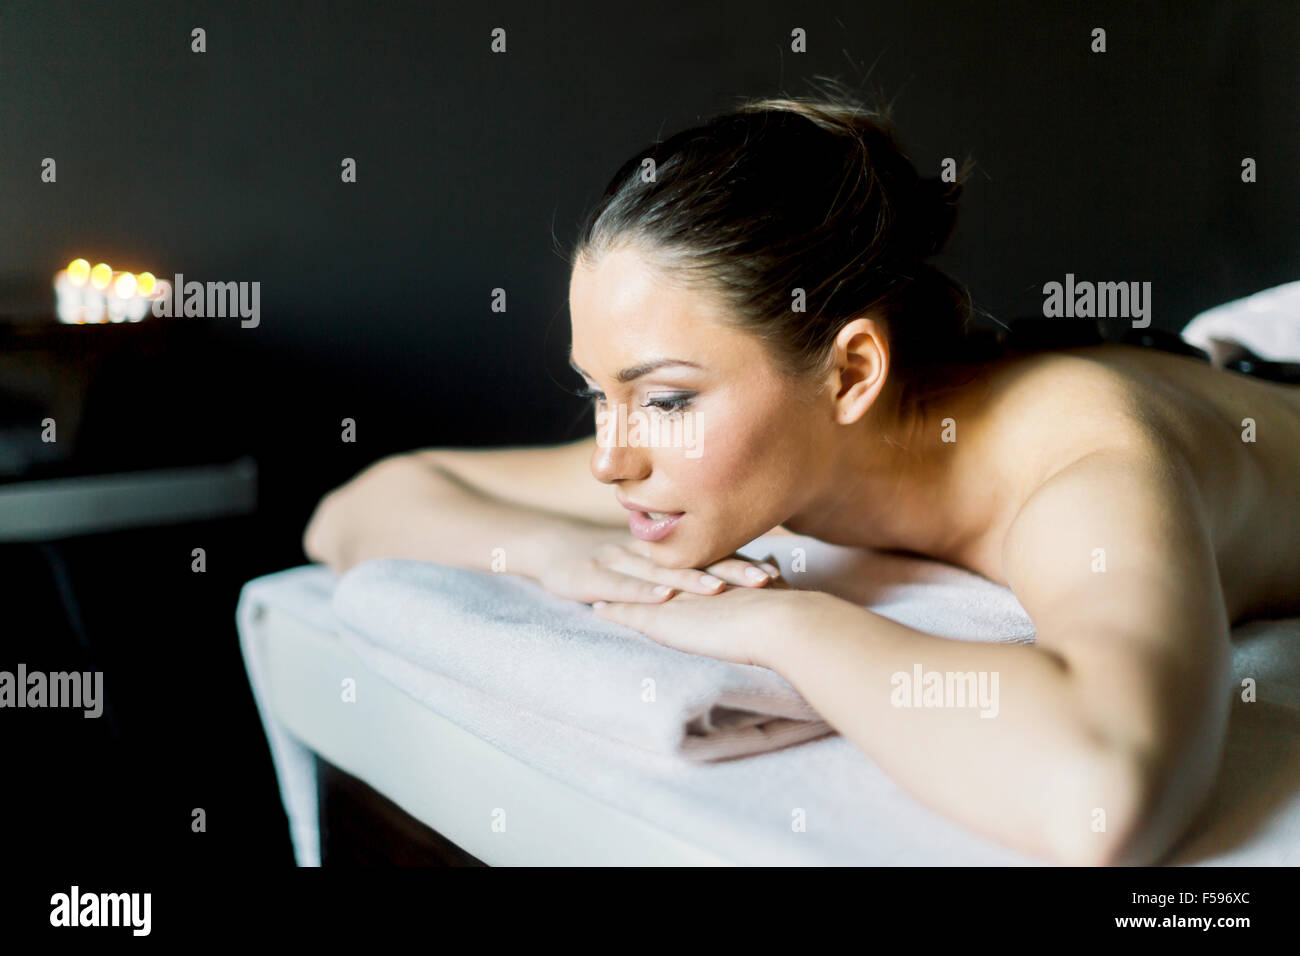 Portrait of a young and beautiful woman  relaxing with eyes open on a massage table in a dark room with candlelight - Stock Image